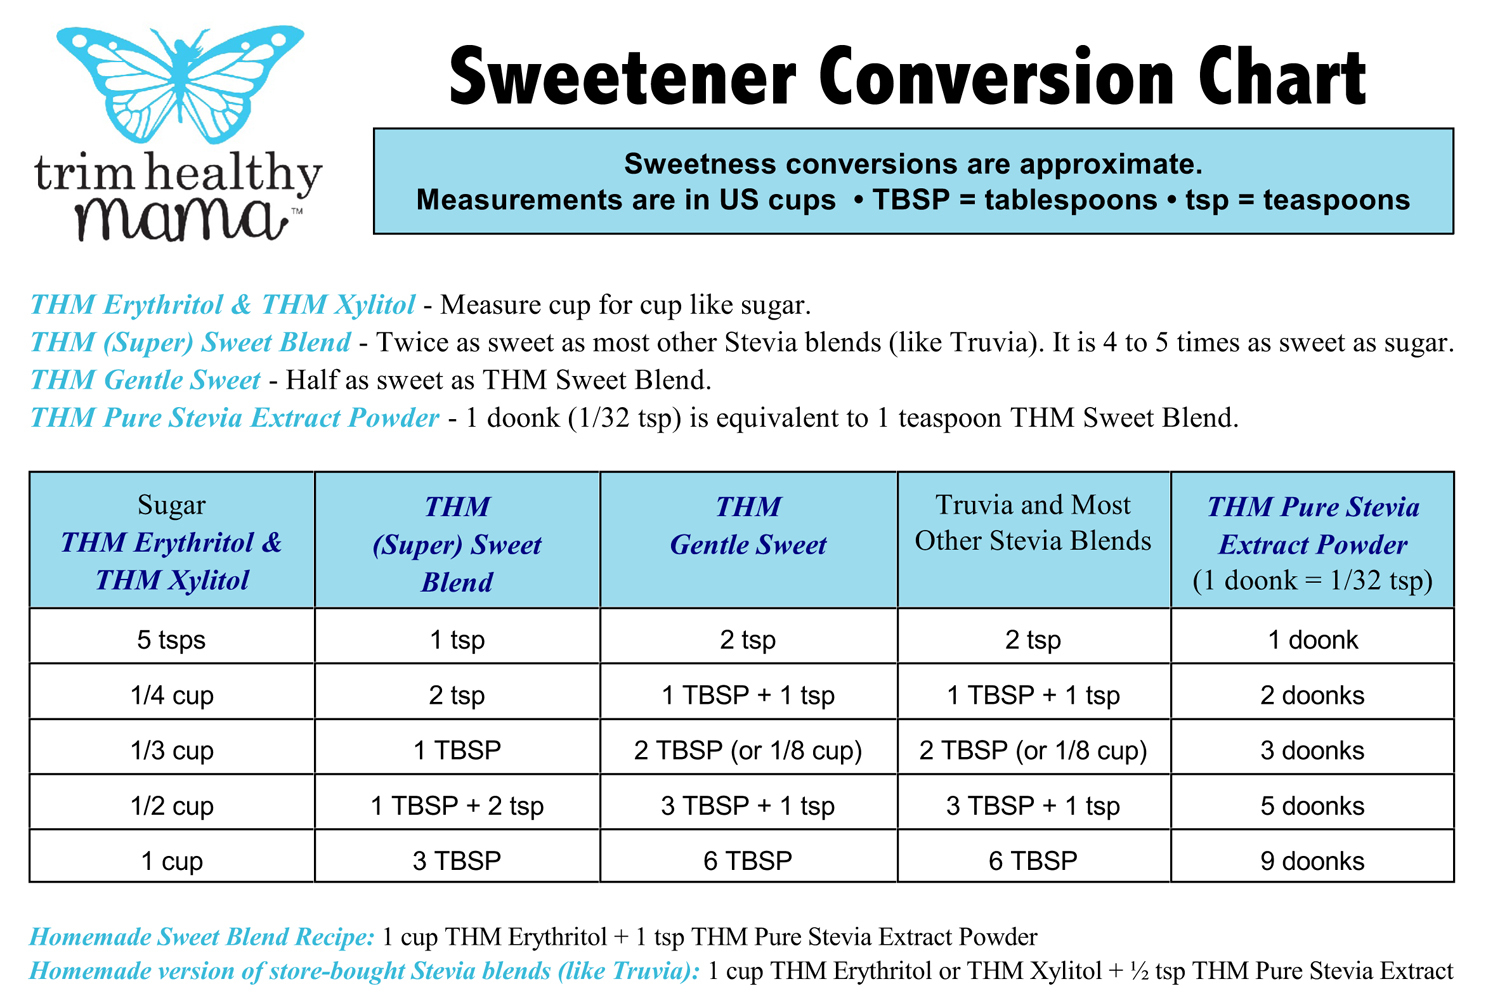 sweetenerconversionchartsmall